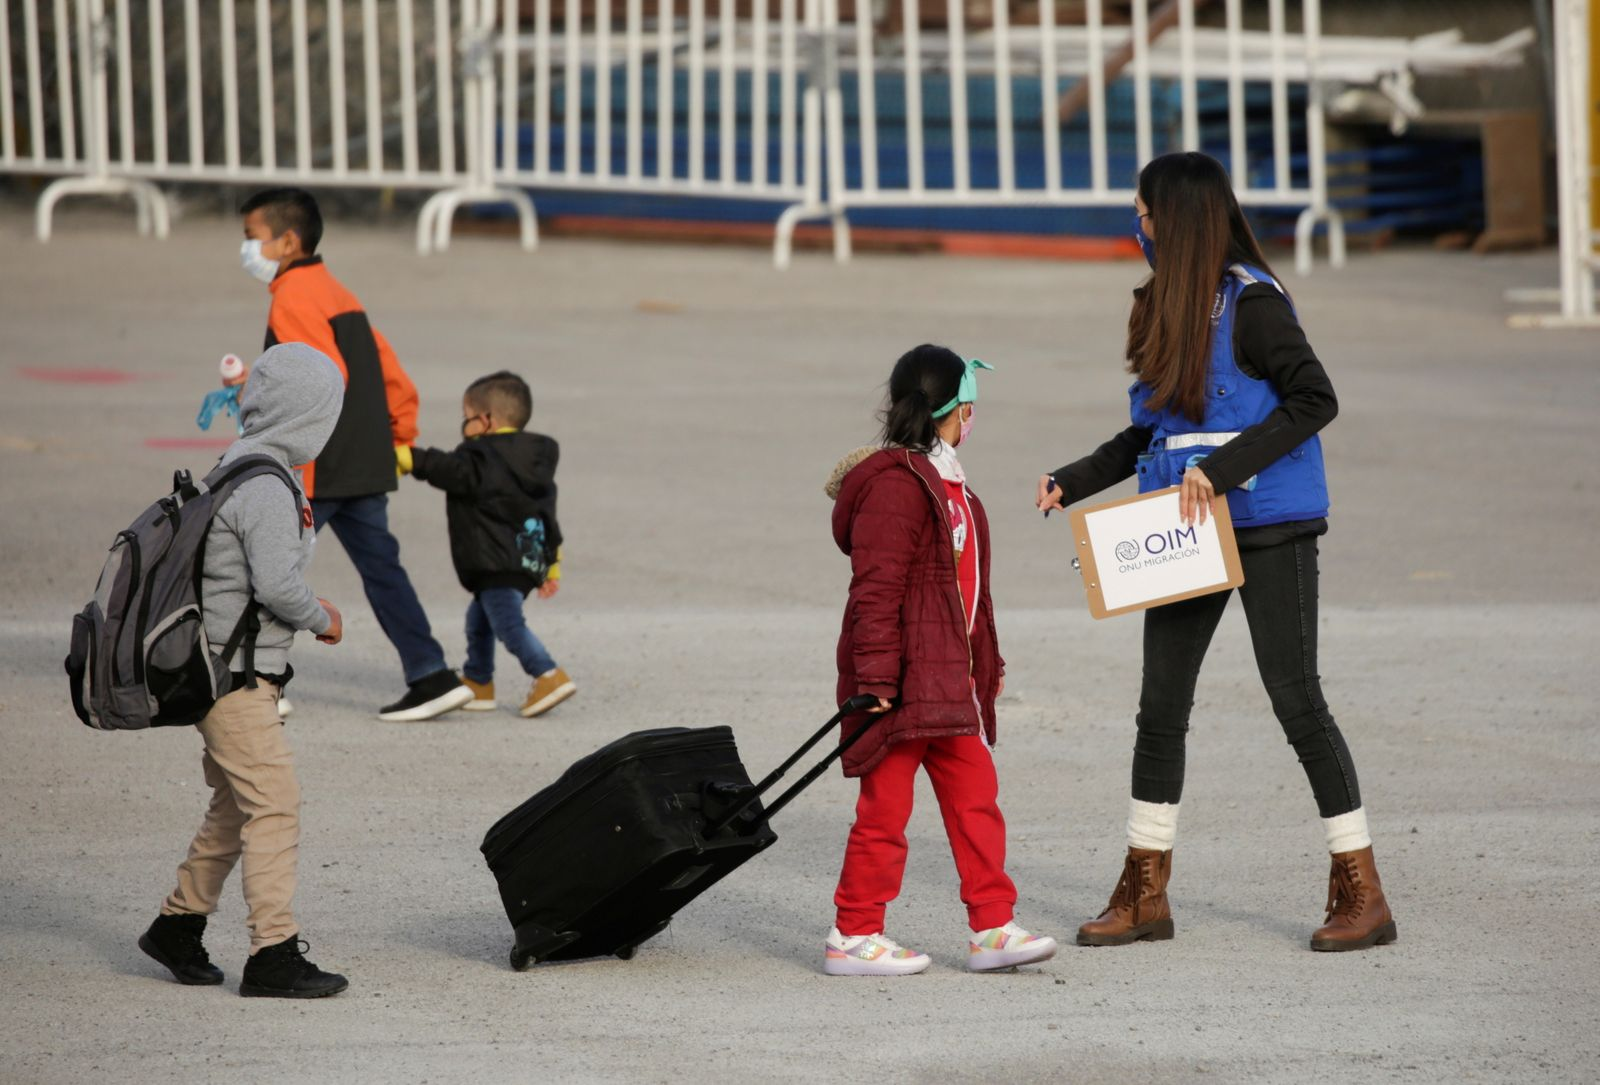 Migrants from Central America before being transferred to continue their asylum request in the United States